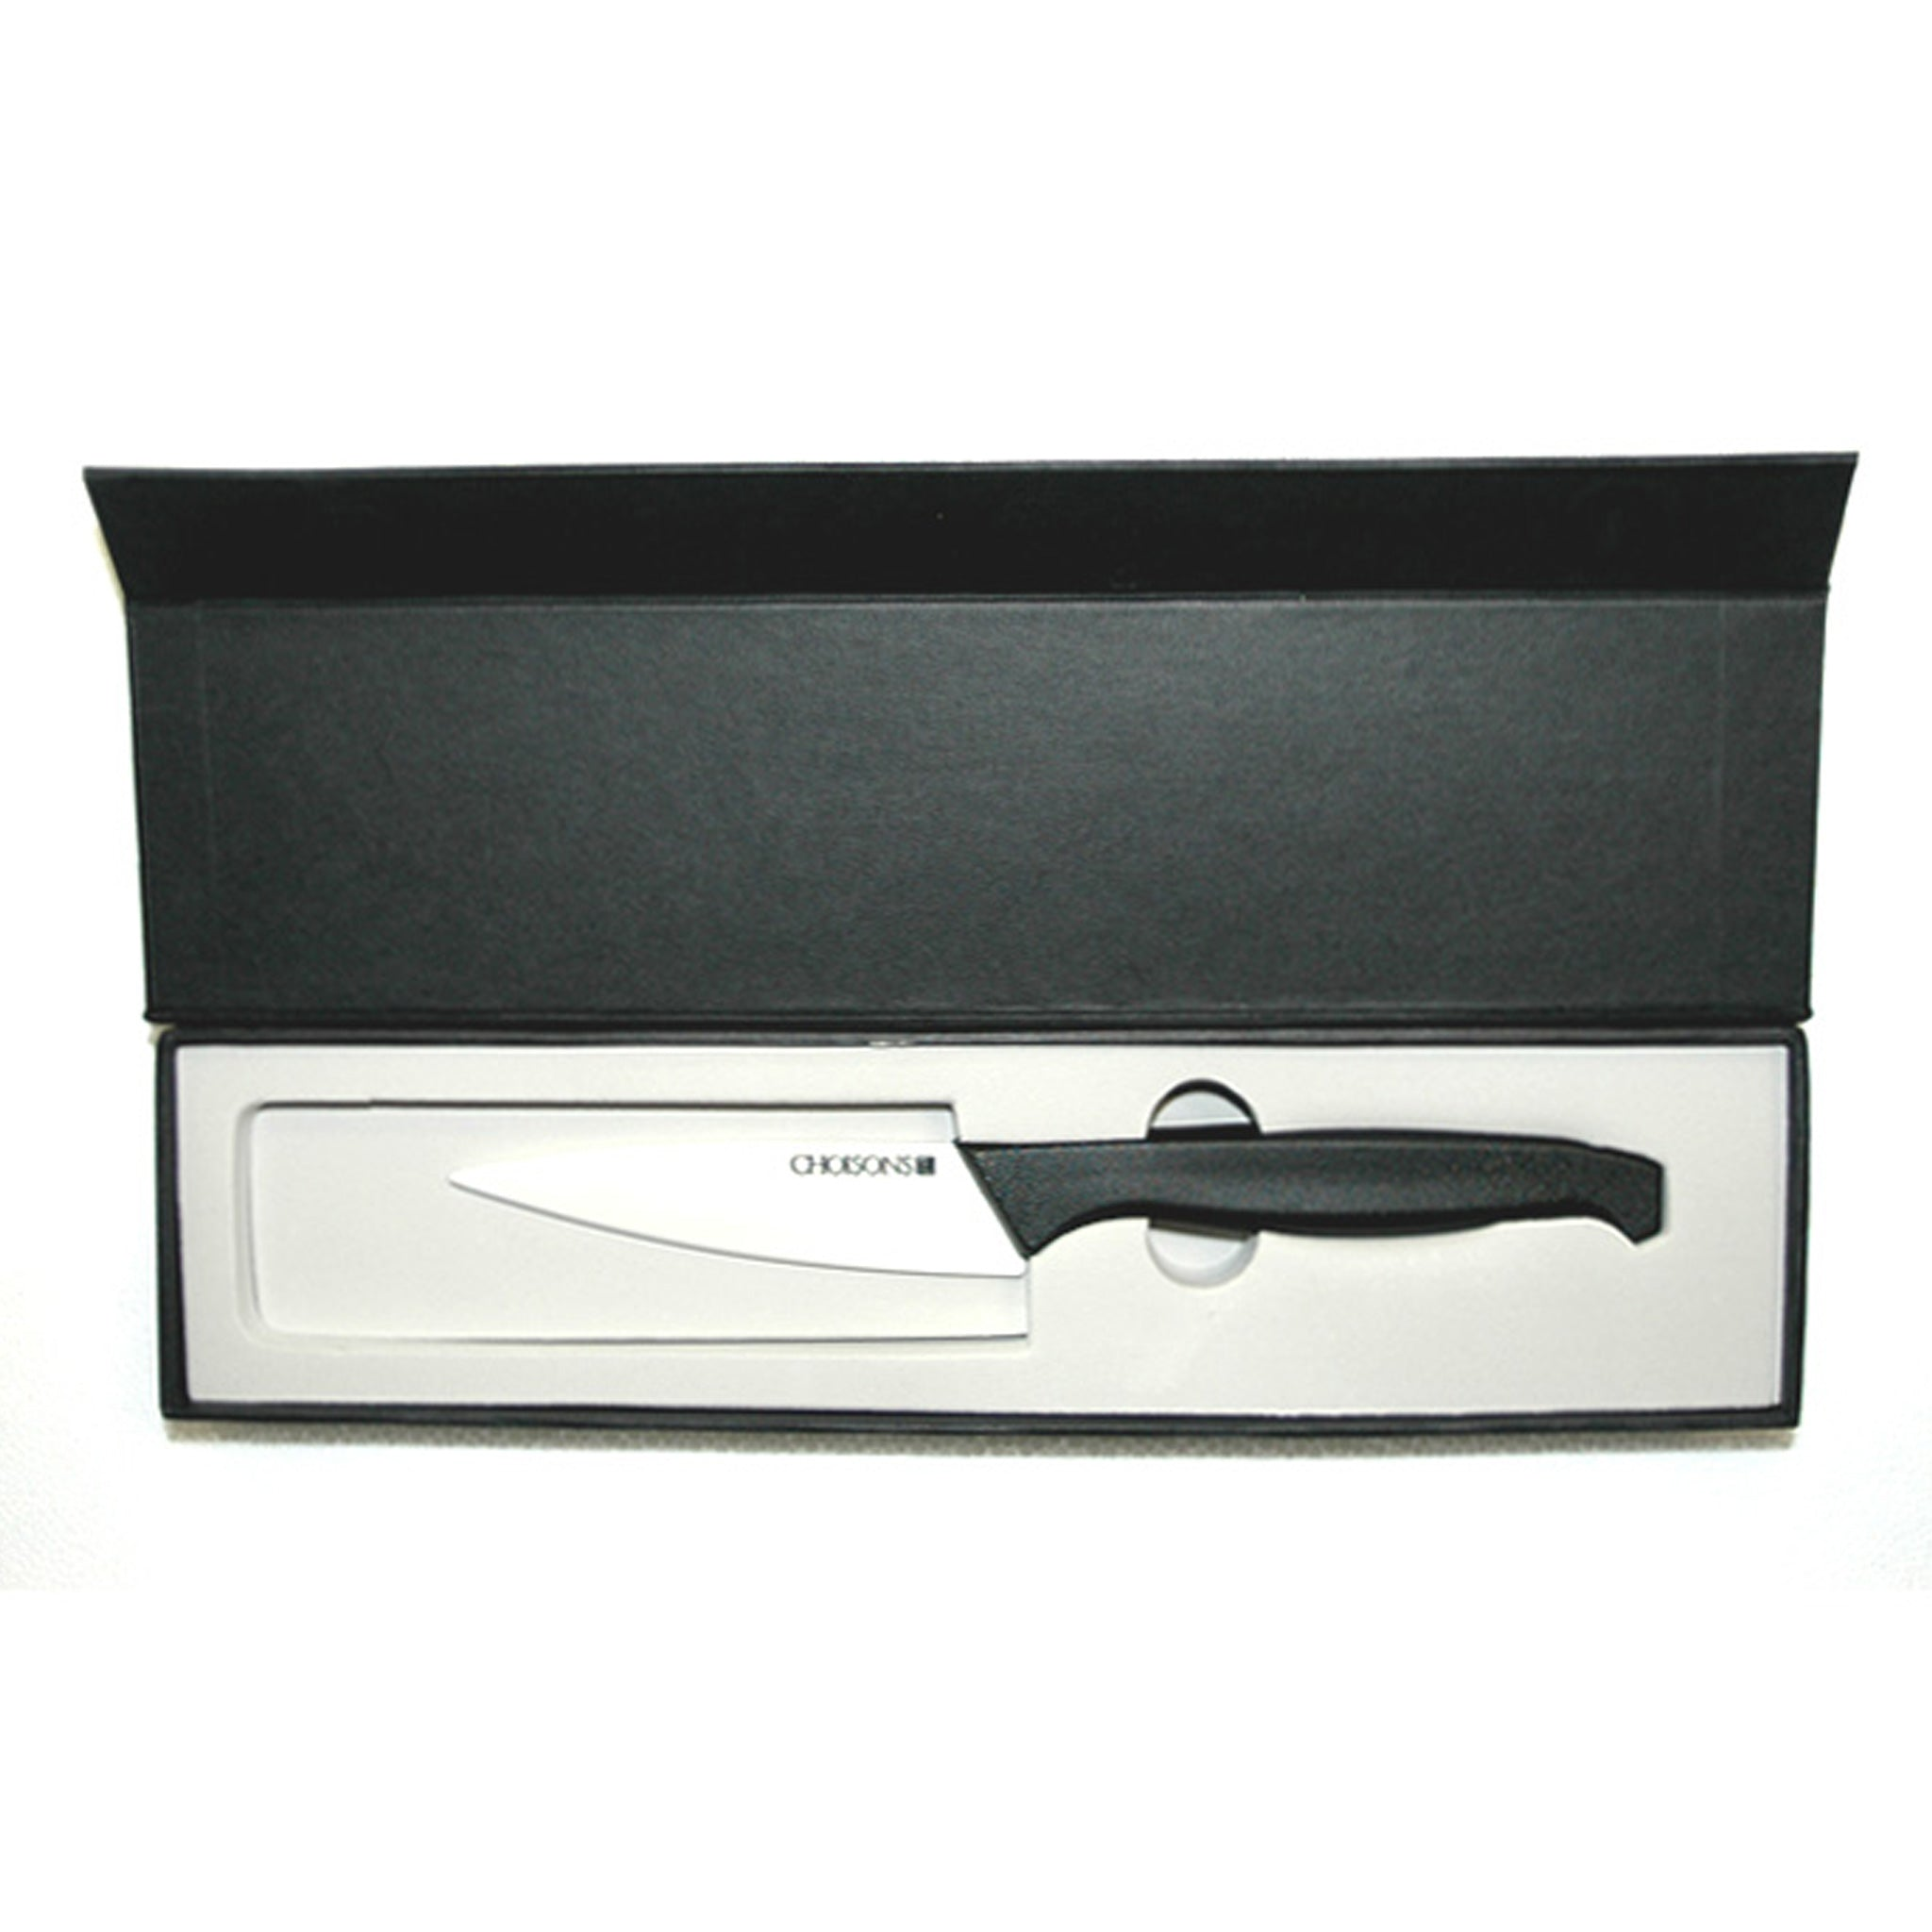 "Choisons® Original Series 4"" Paring Knife with Gift Box"